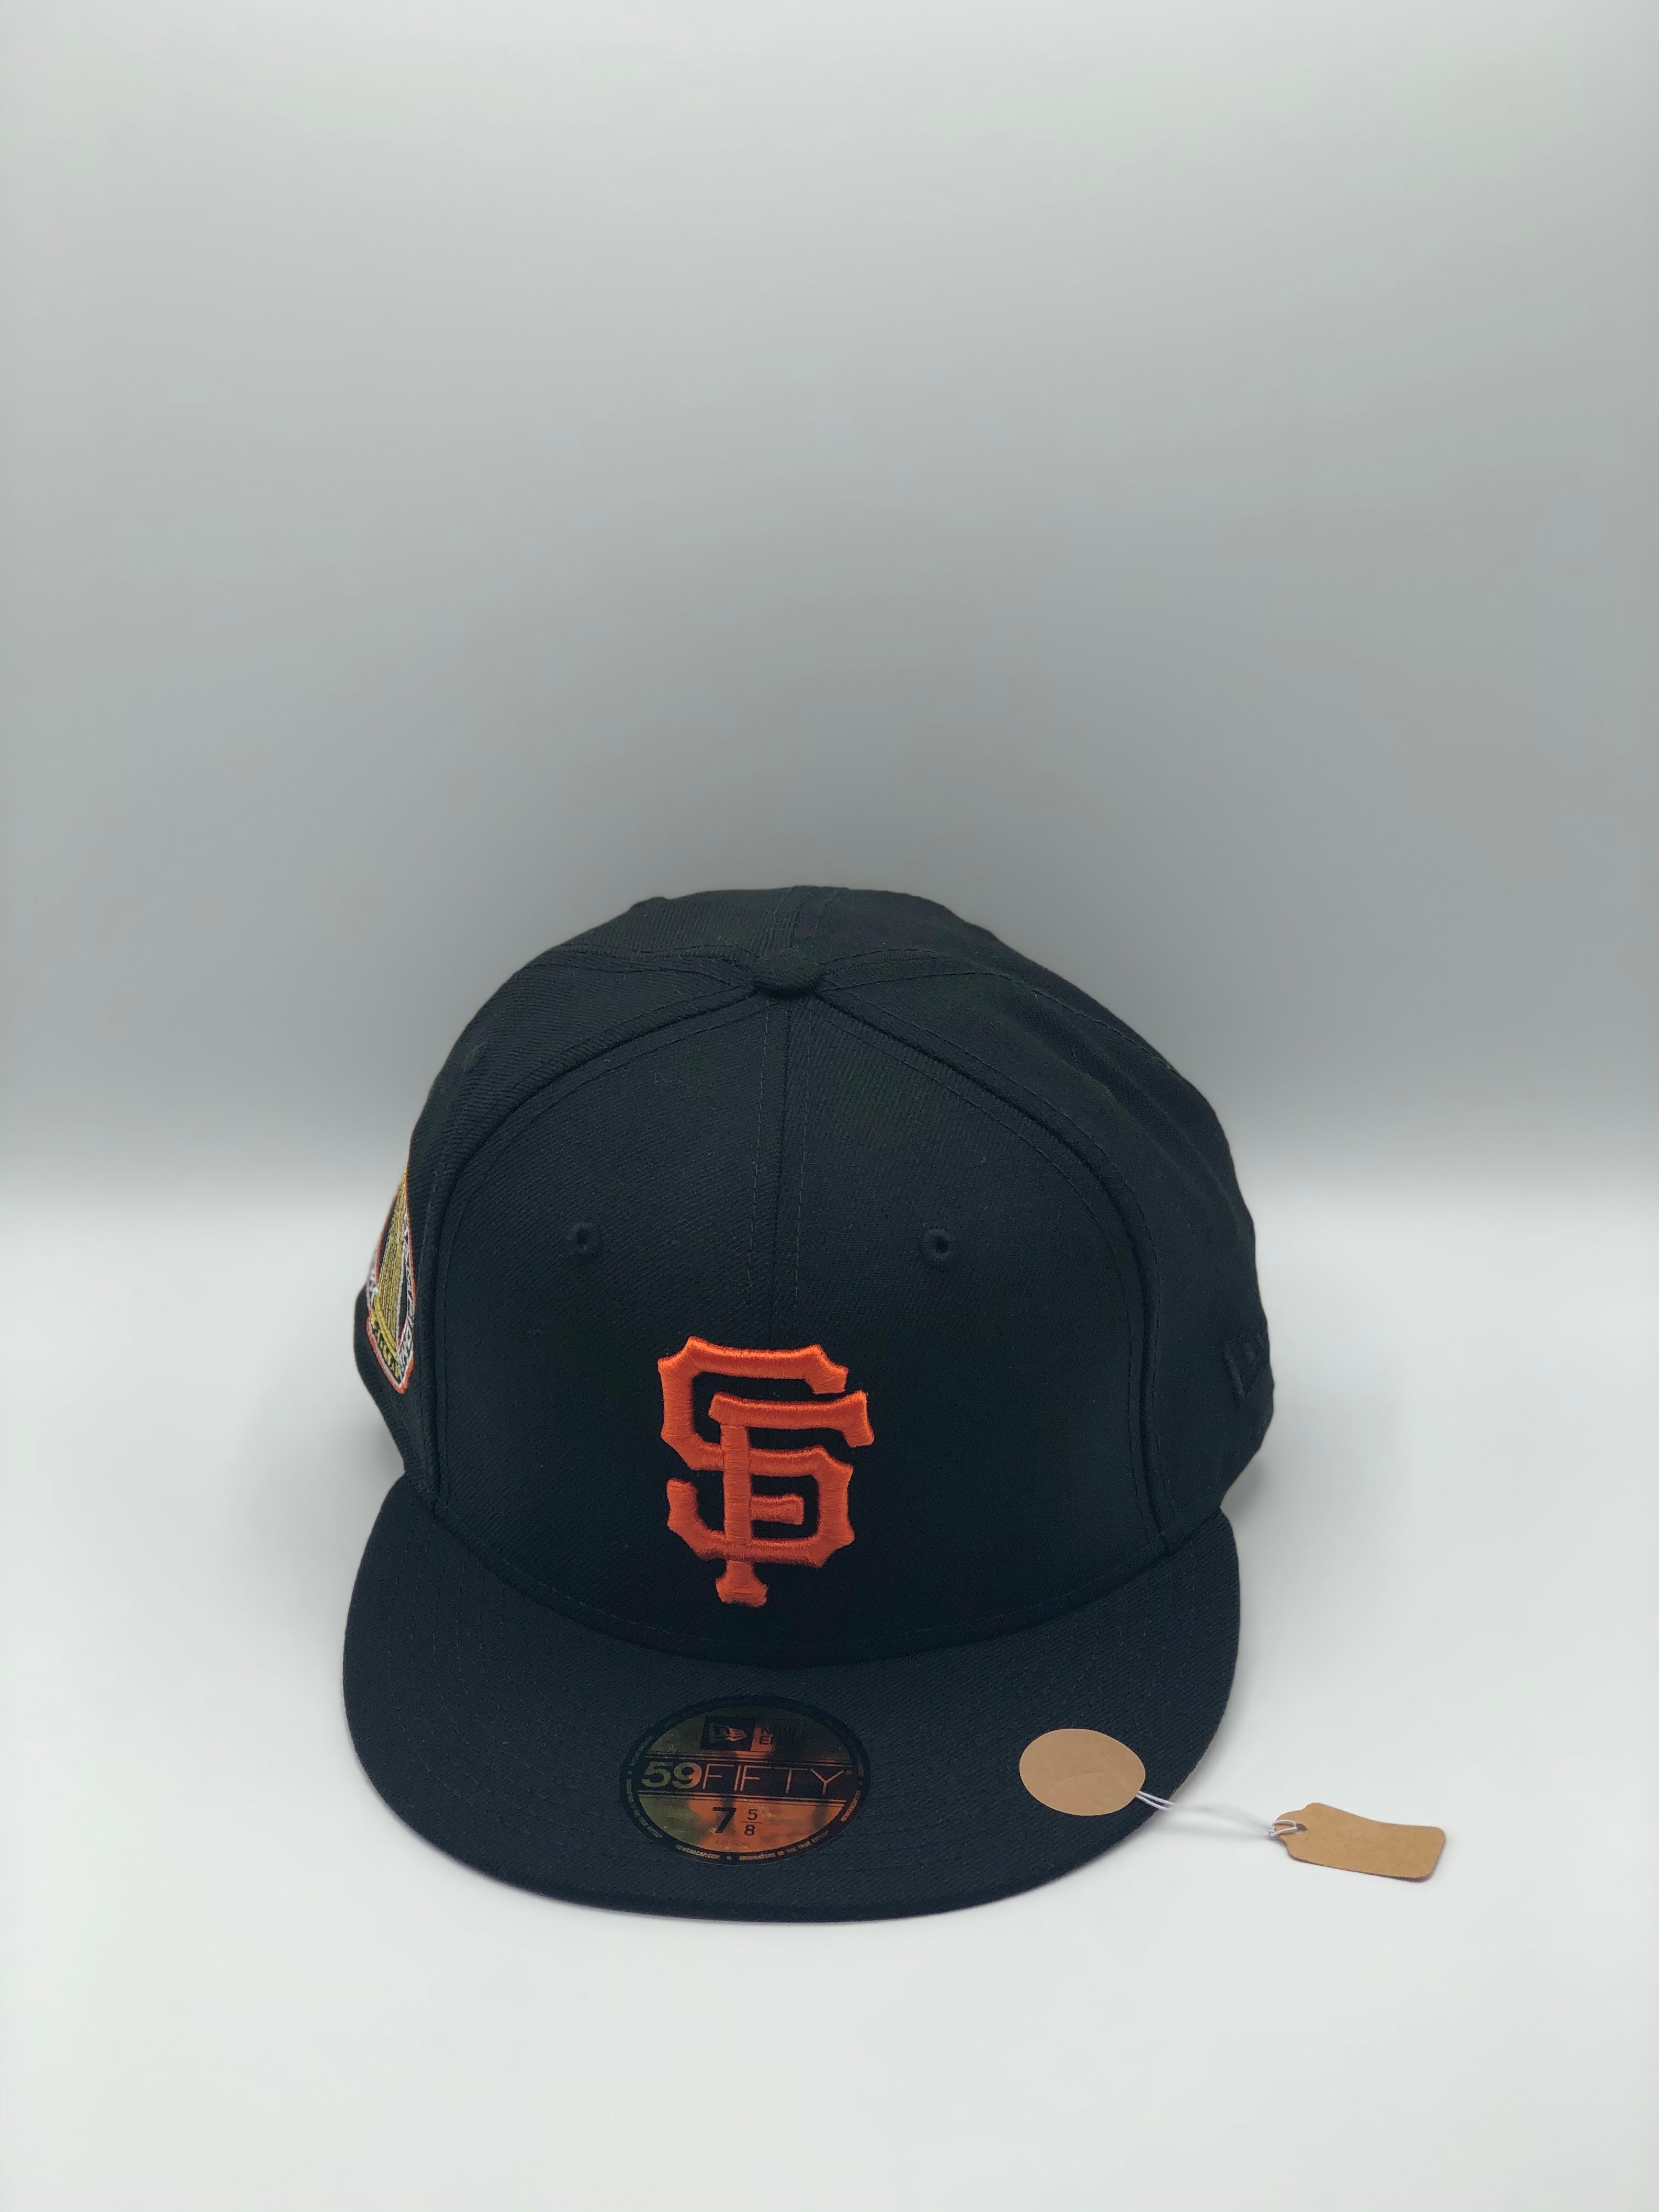 SAN FRANCISCO GIANTS x 2010 CHAMPIONS NEW ERA 59FIFTY #GOLD UV